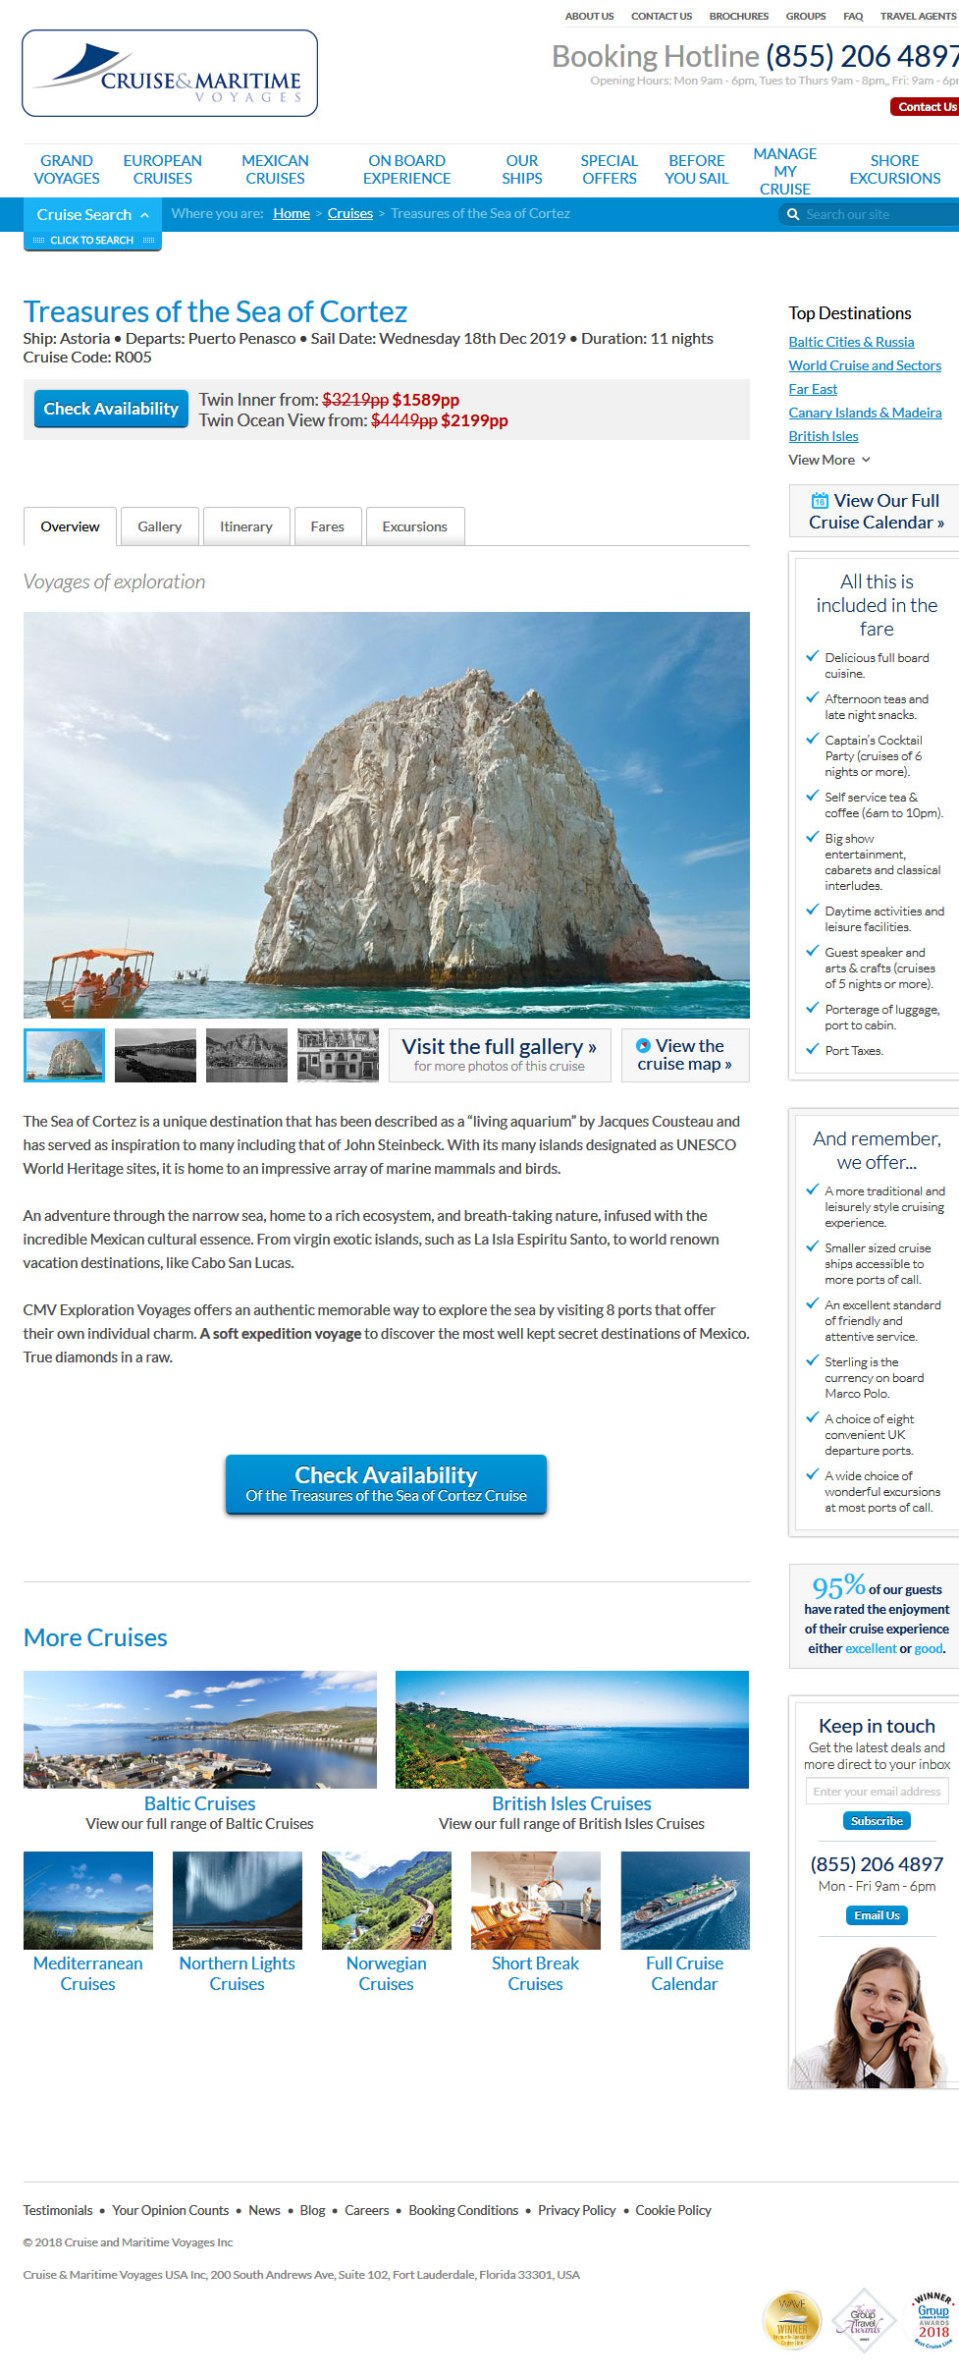 Cruise & Maritime Voyages in Rocky Point Mexico (Puerto Penasco) December 18, 2019. Click the Picture to visit Cruise & Maritime Voyages Site.